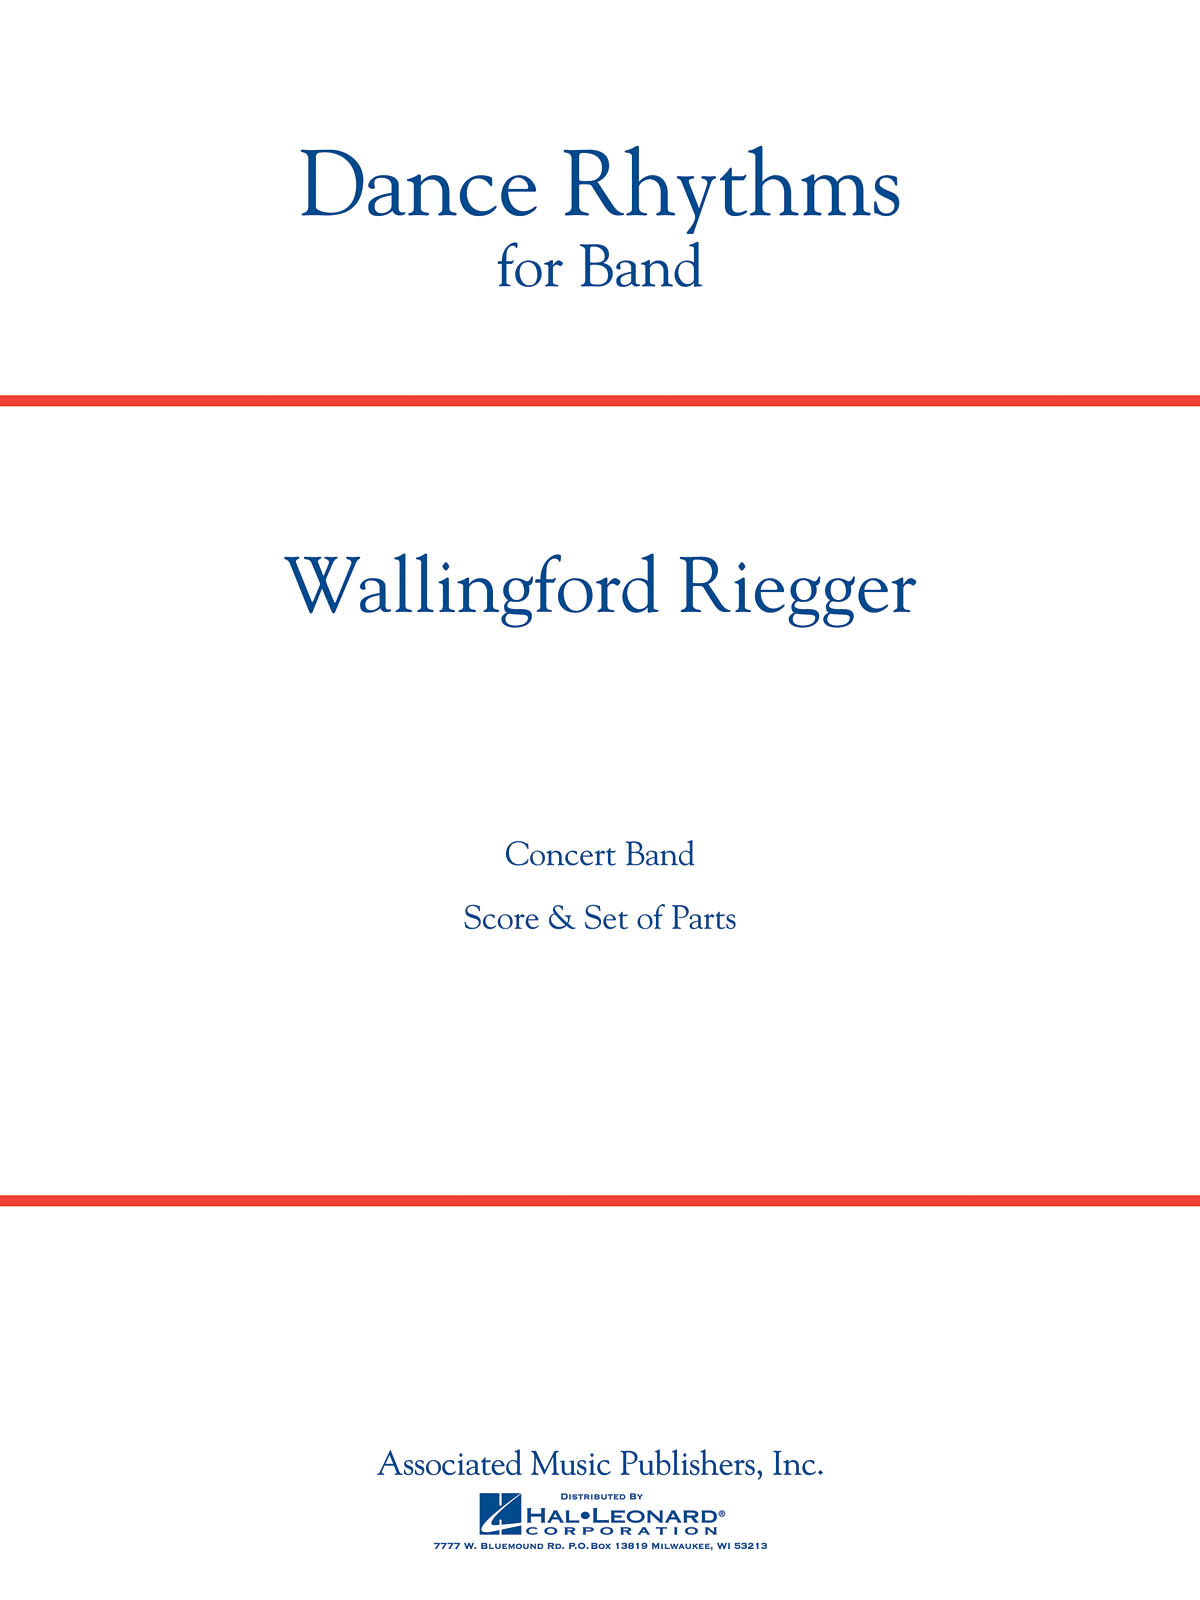 Wallingford Riegger: Dance Rhythms for Band  Op. 58: Orchestra: Score & Parts